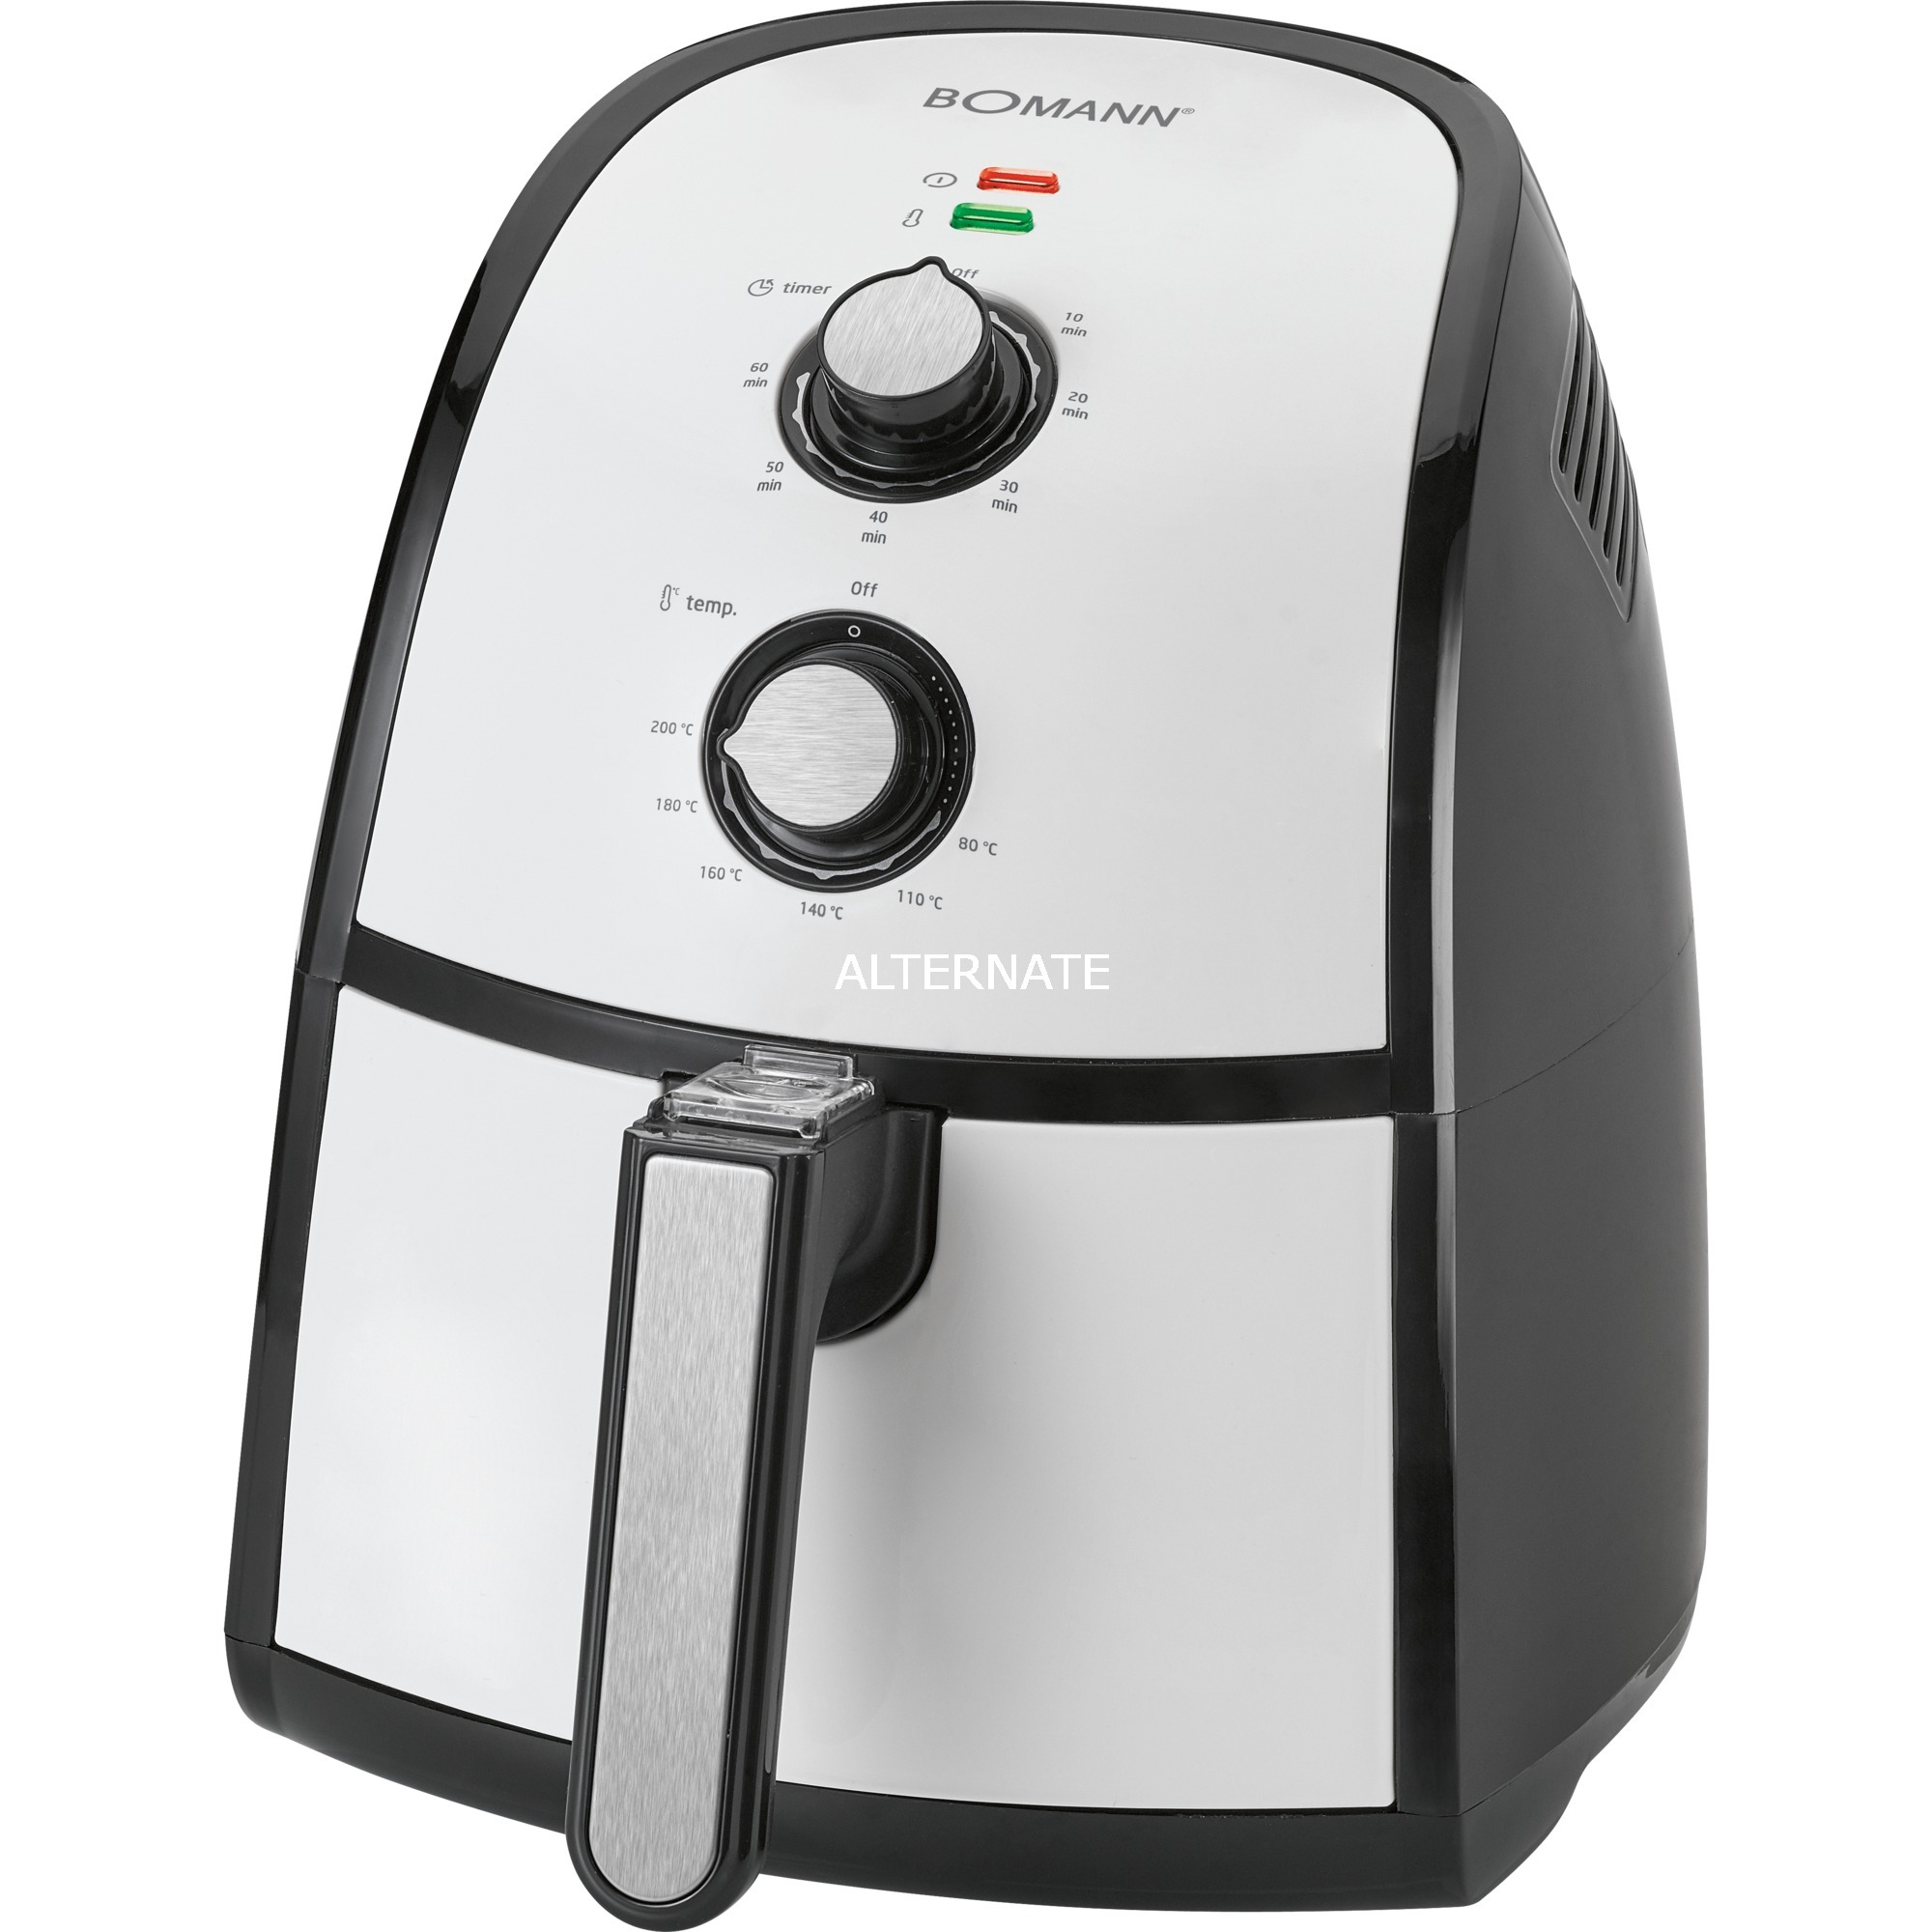 FR 2301 H CB Solo Independiente Hot air fryer 2.2L 1500W Negro, Plata, Freidora